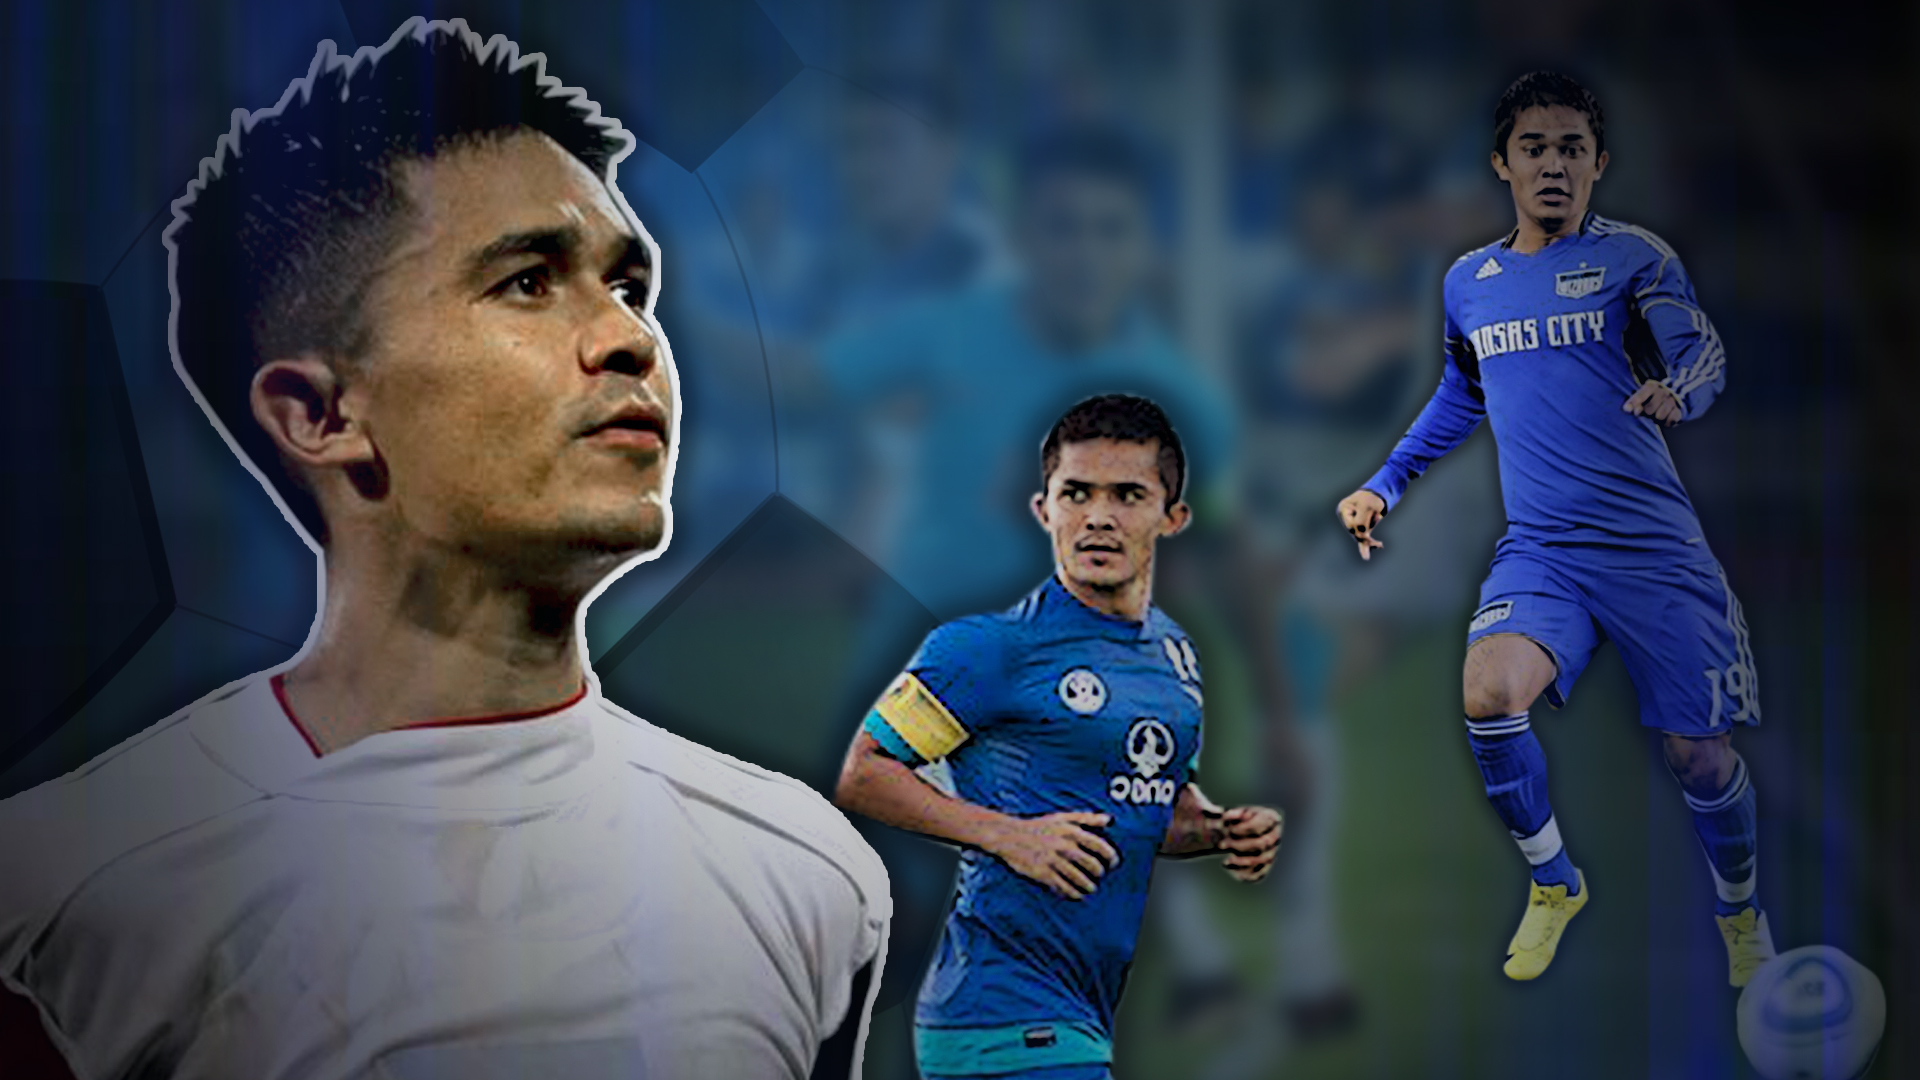 Indian football team and Bengaluru FC skipper Sunil Chhetri